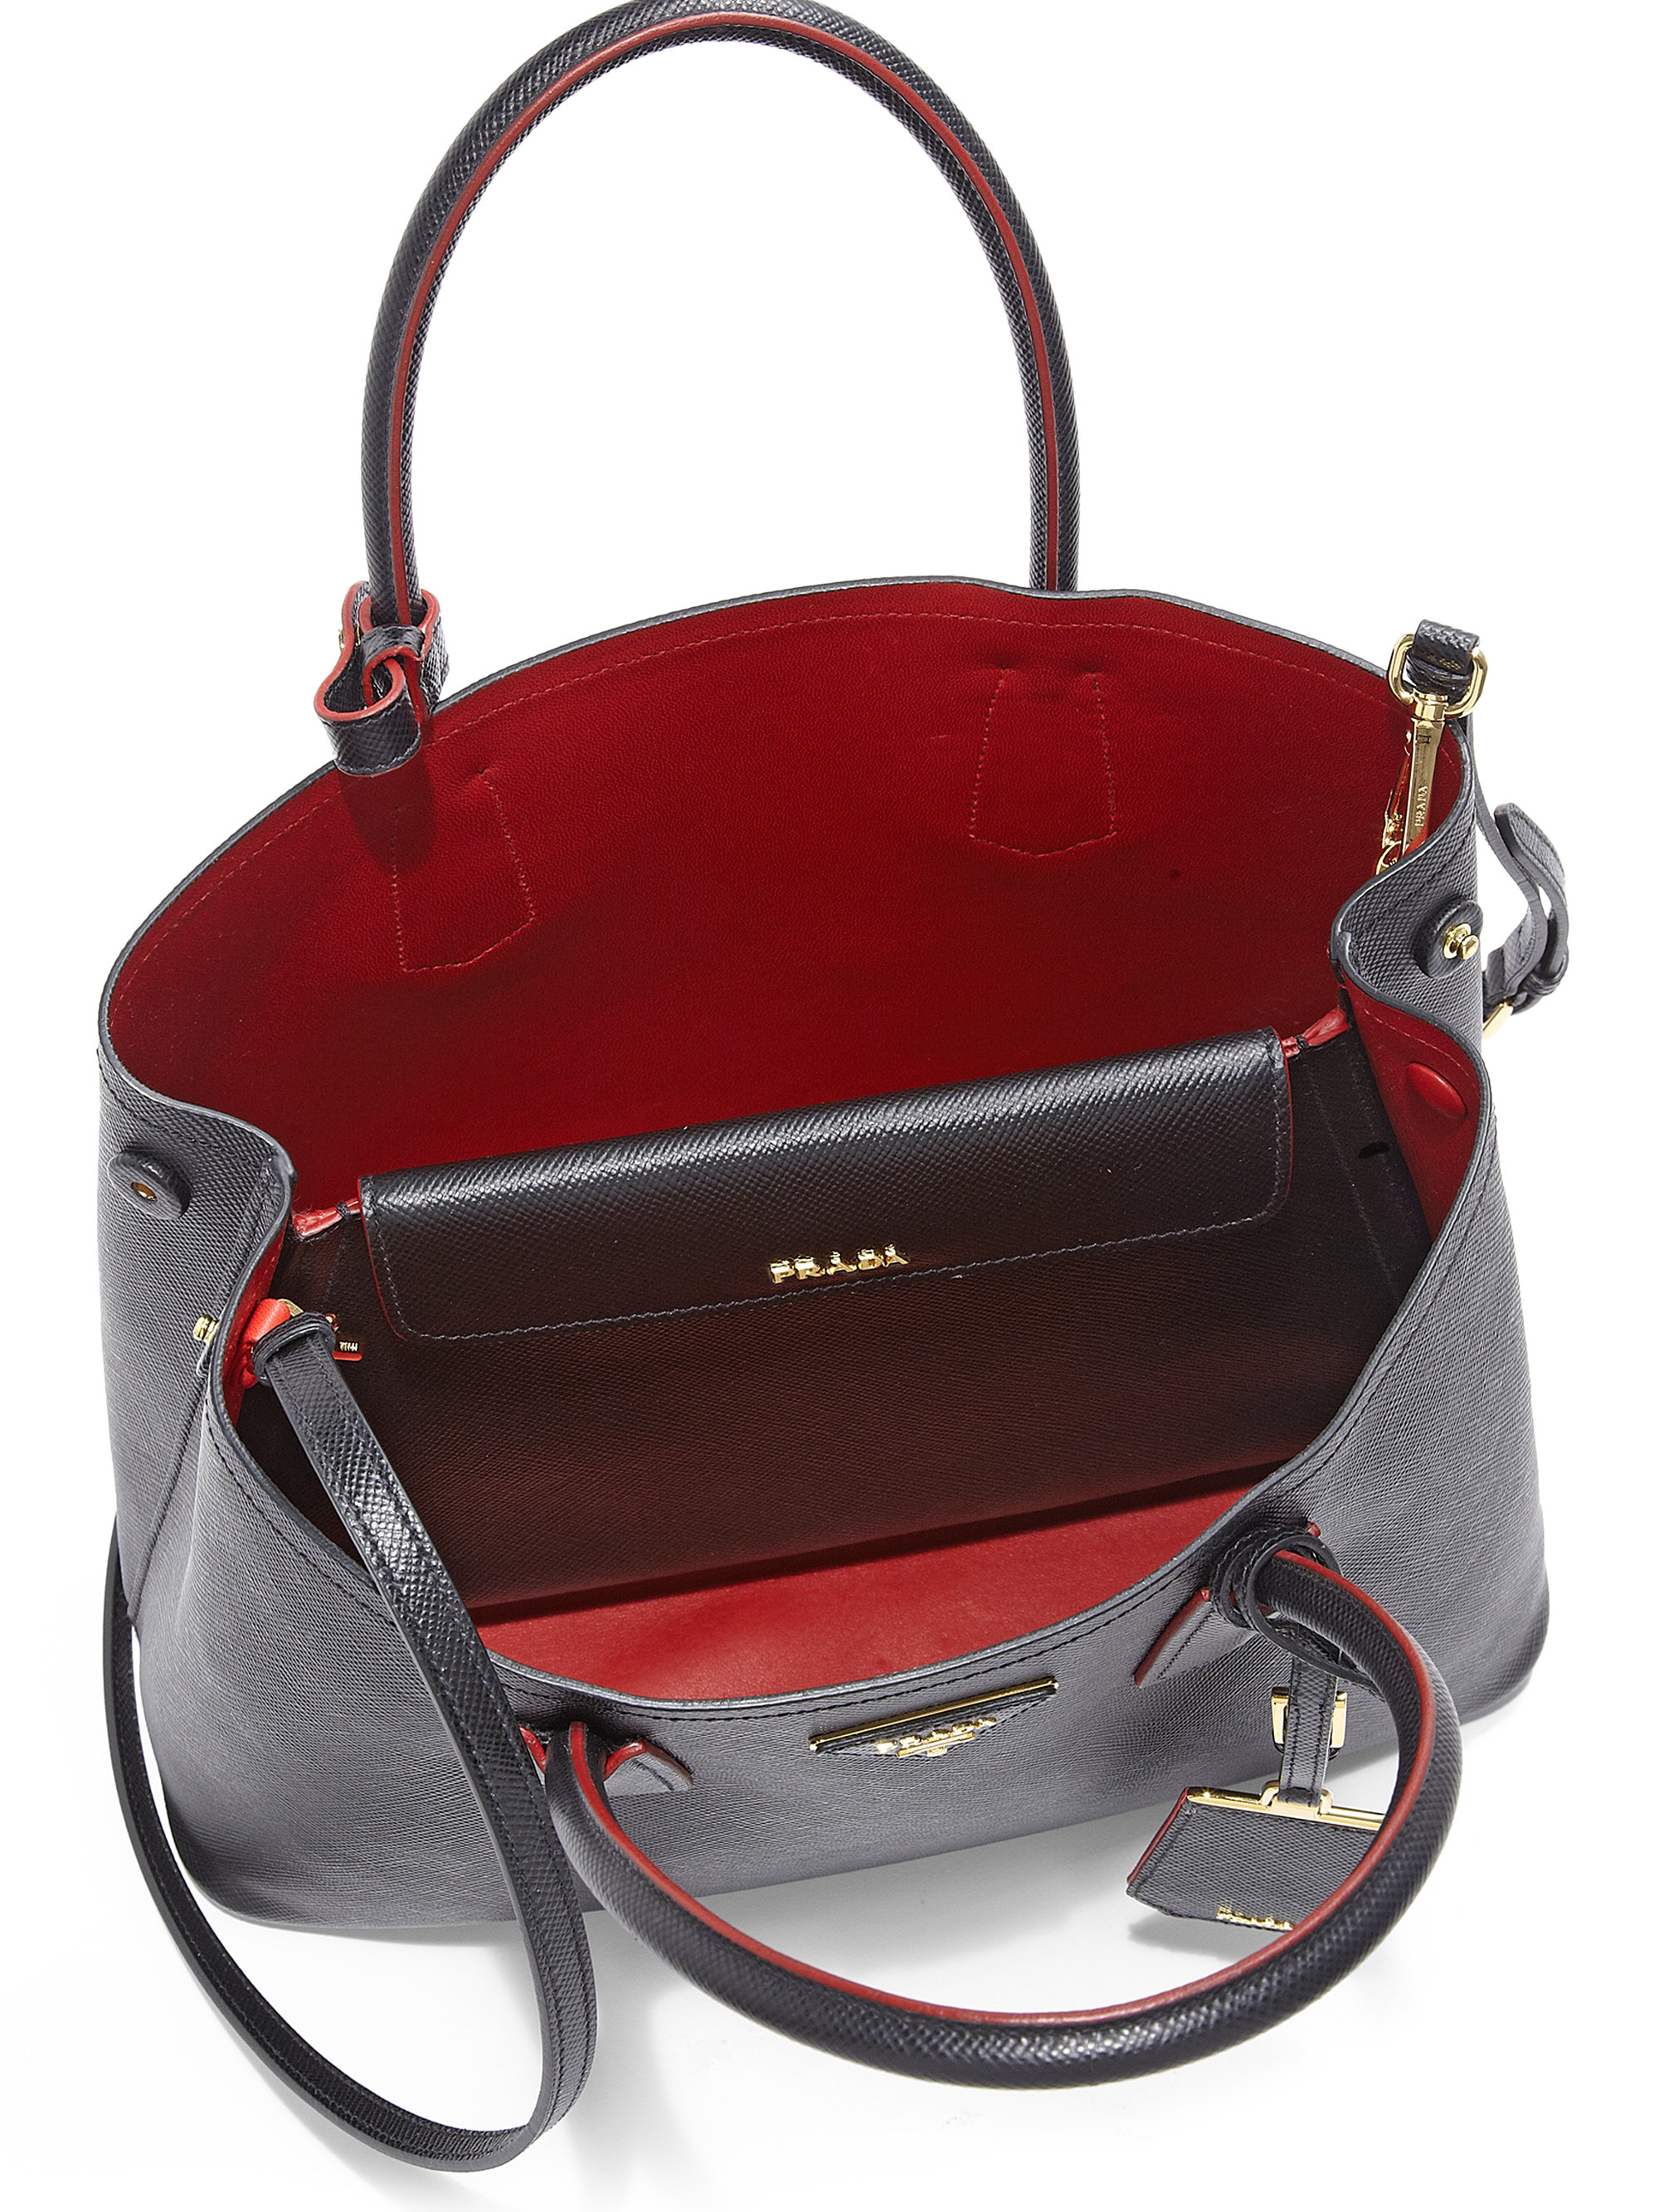 e90746cf4dd3 ... canada lyst prada saffiano cuir small double bag in red 14cdf 60123